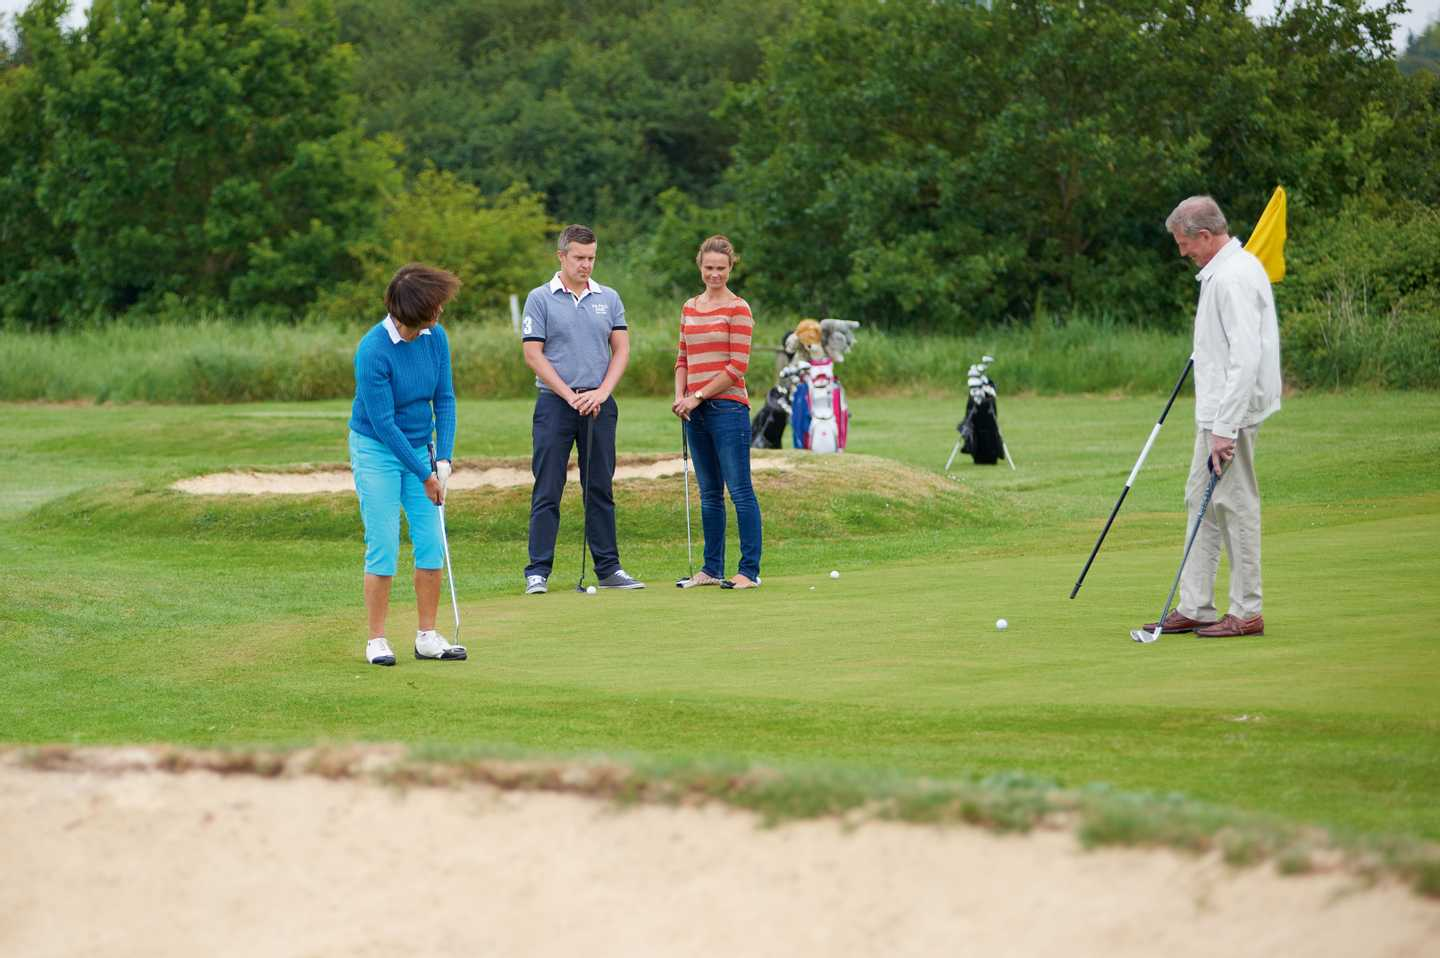 Family group playing golf